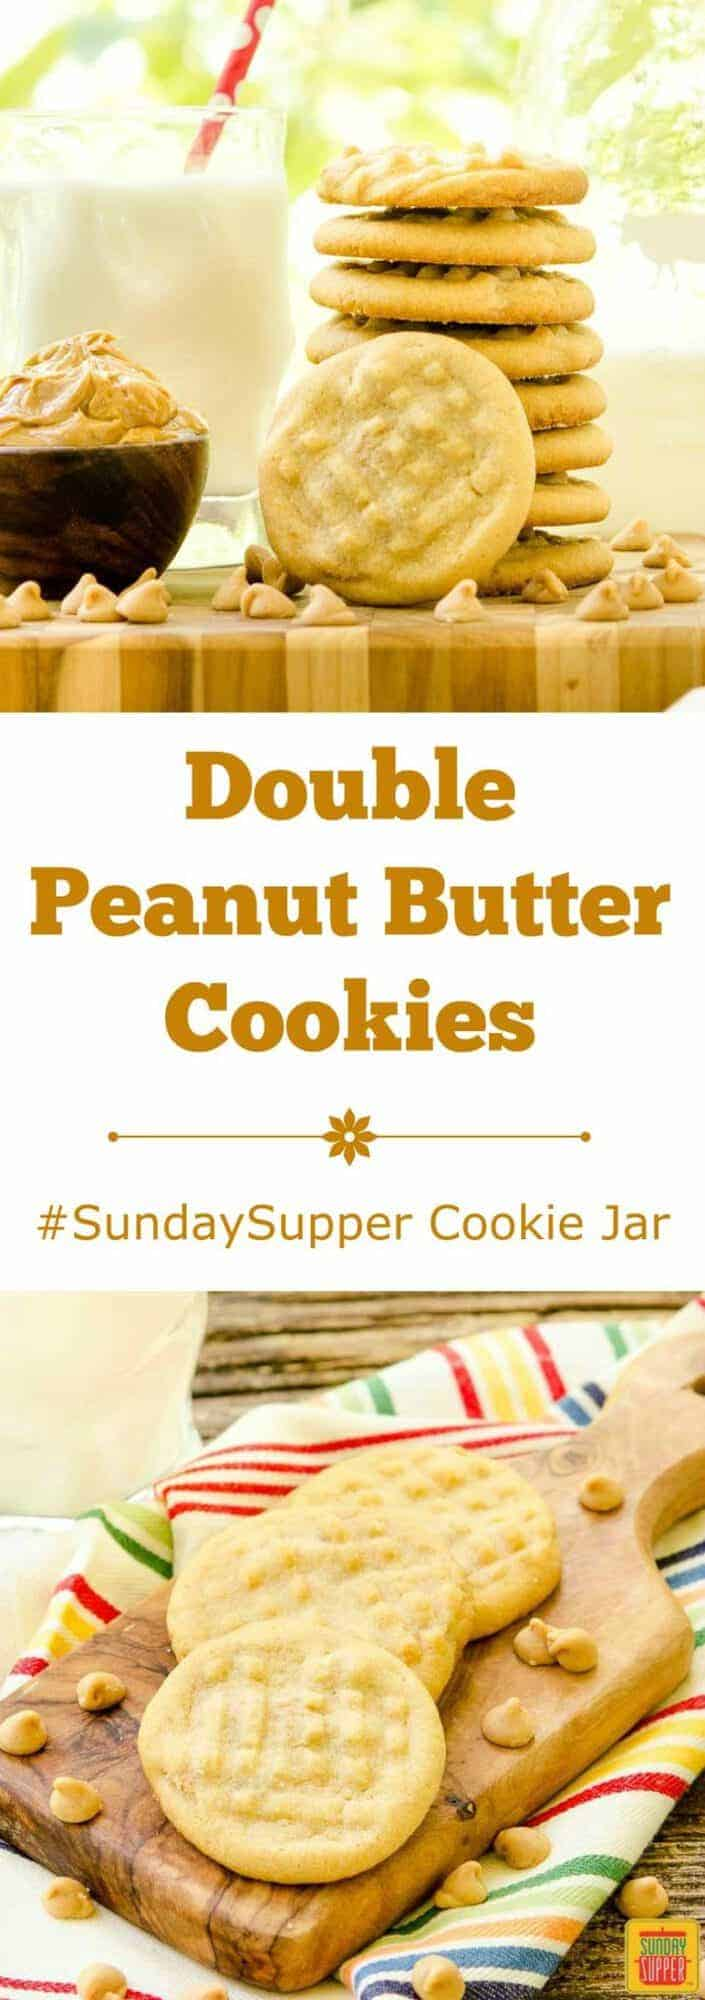 Double Peanut Butter Cookies are a twist on a classic treat. Peanut butter chips make these cookies doubly good. #SundaySupper Cookie Jar